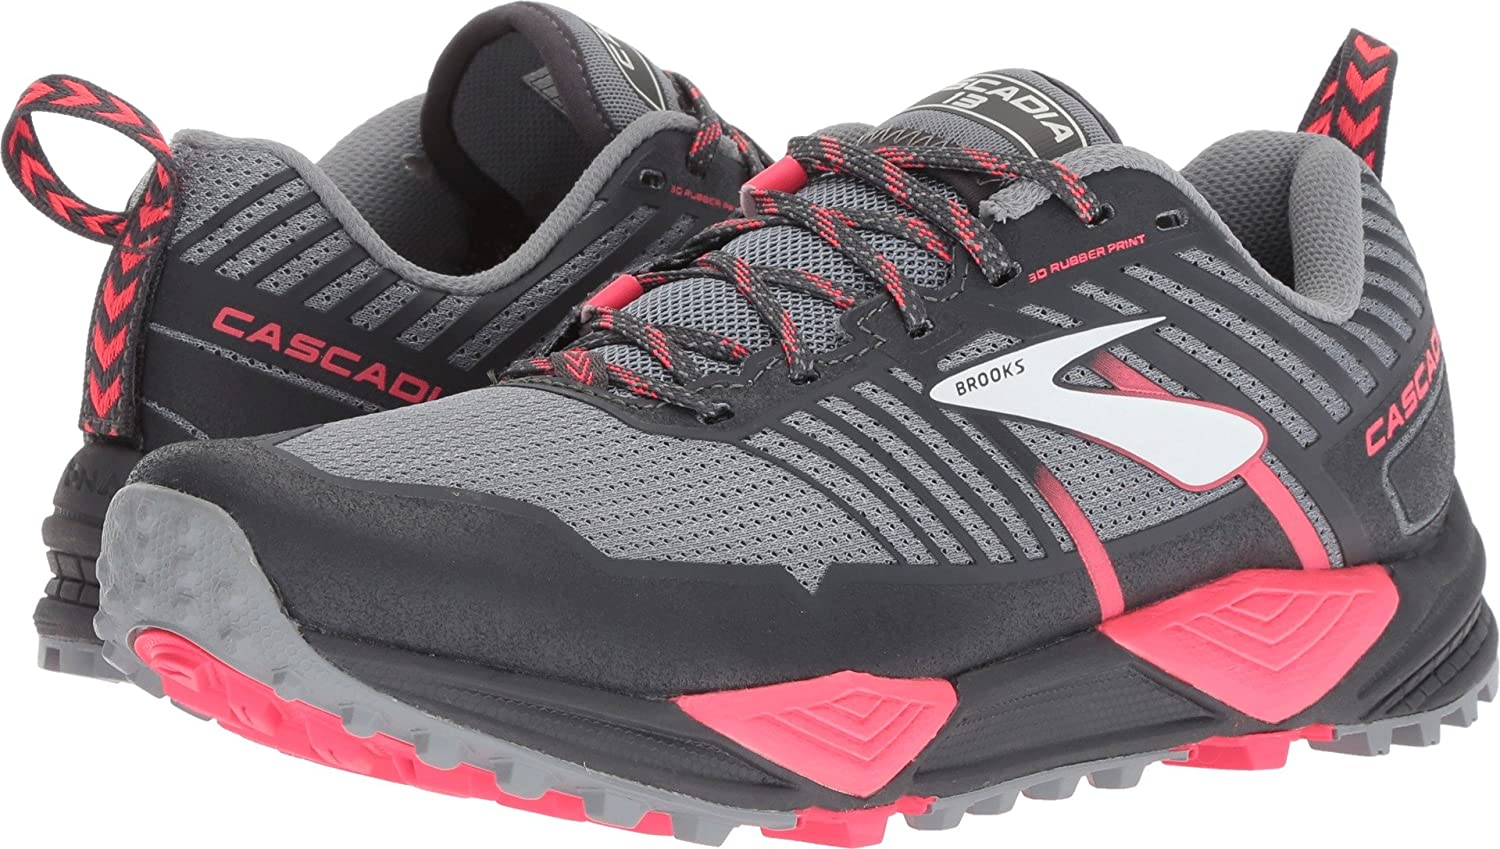 Brooks Womens Cascadia 13 B07884J1QT 12 B(M) US|Grey/Grey/Pink